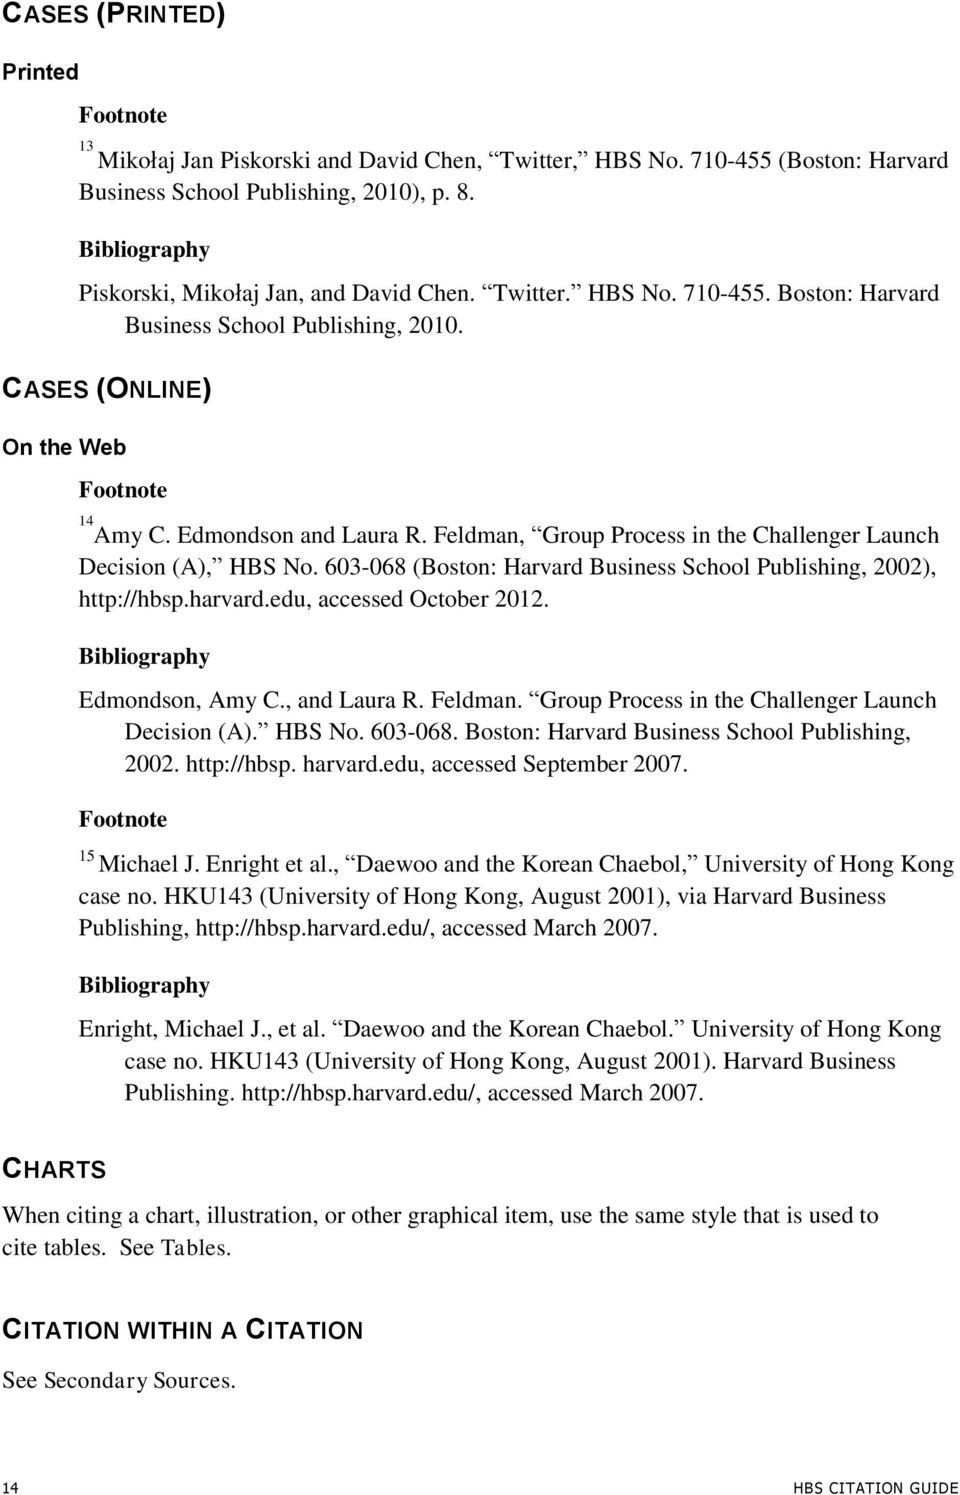 603-068 (Boston: Harvard Business School Publishing, 2002), http://hbsp.harvard.edu, accessed October 2012. Edmondson, Amy C., and Laura R. Feldman.